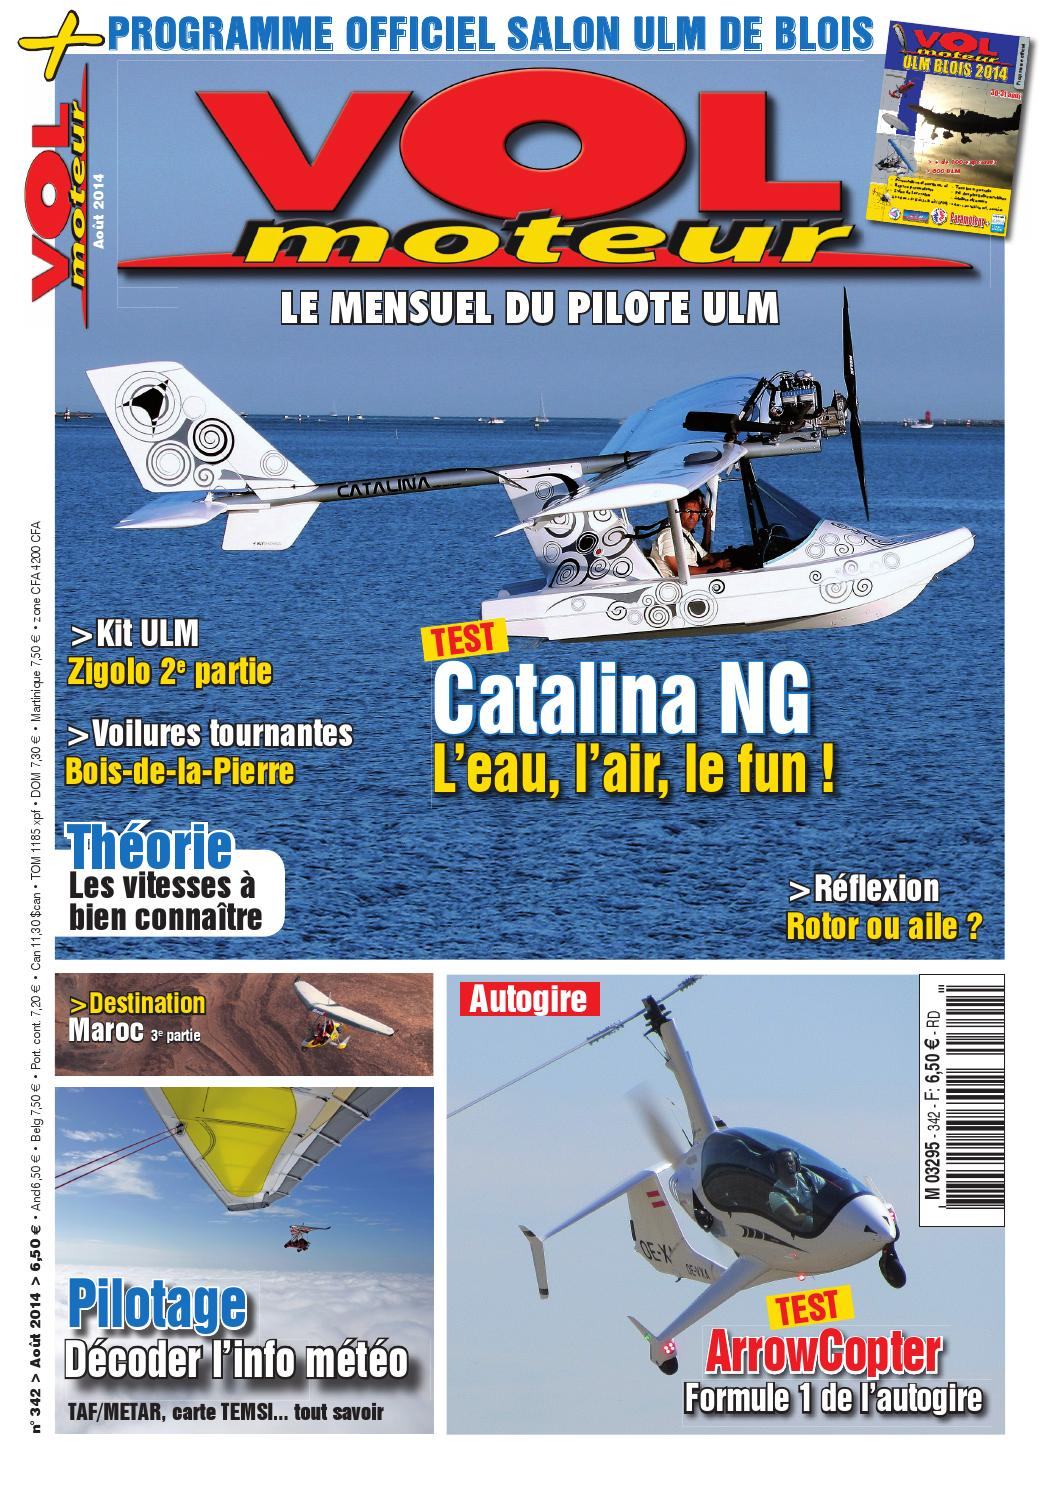 Vol moteur ao t 2014 by infos a ro issuu for Salon ulm blois